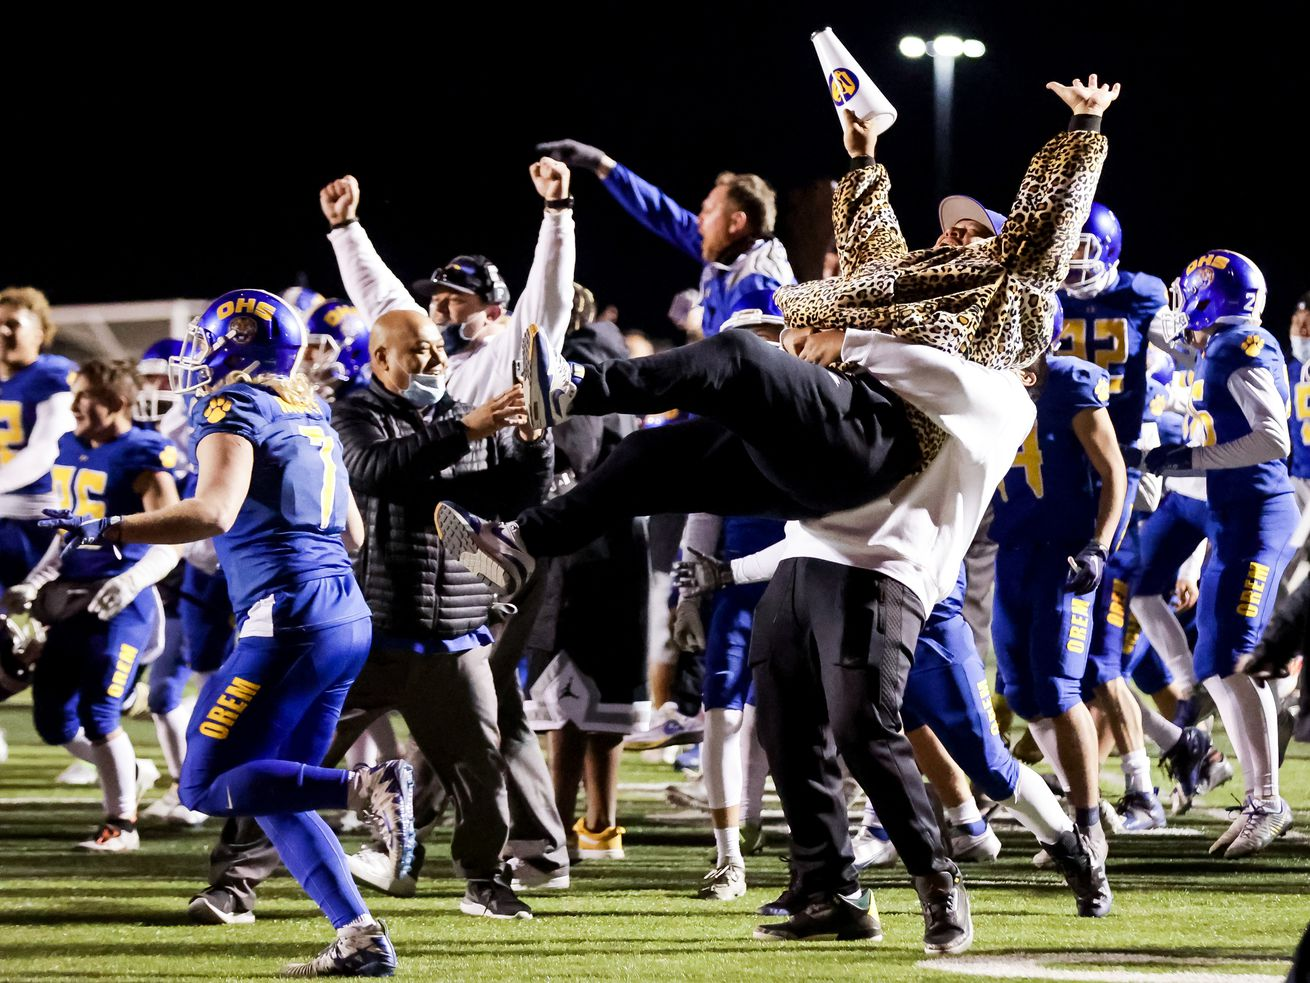 Orem head coach Gabe Sewell is lifted into the air as the team celebrates their win over Timpview in the 5A football state championship game at Cedar Valley High in Eagle Mountain on Friday, Nov. 20, 2020.